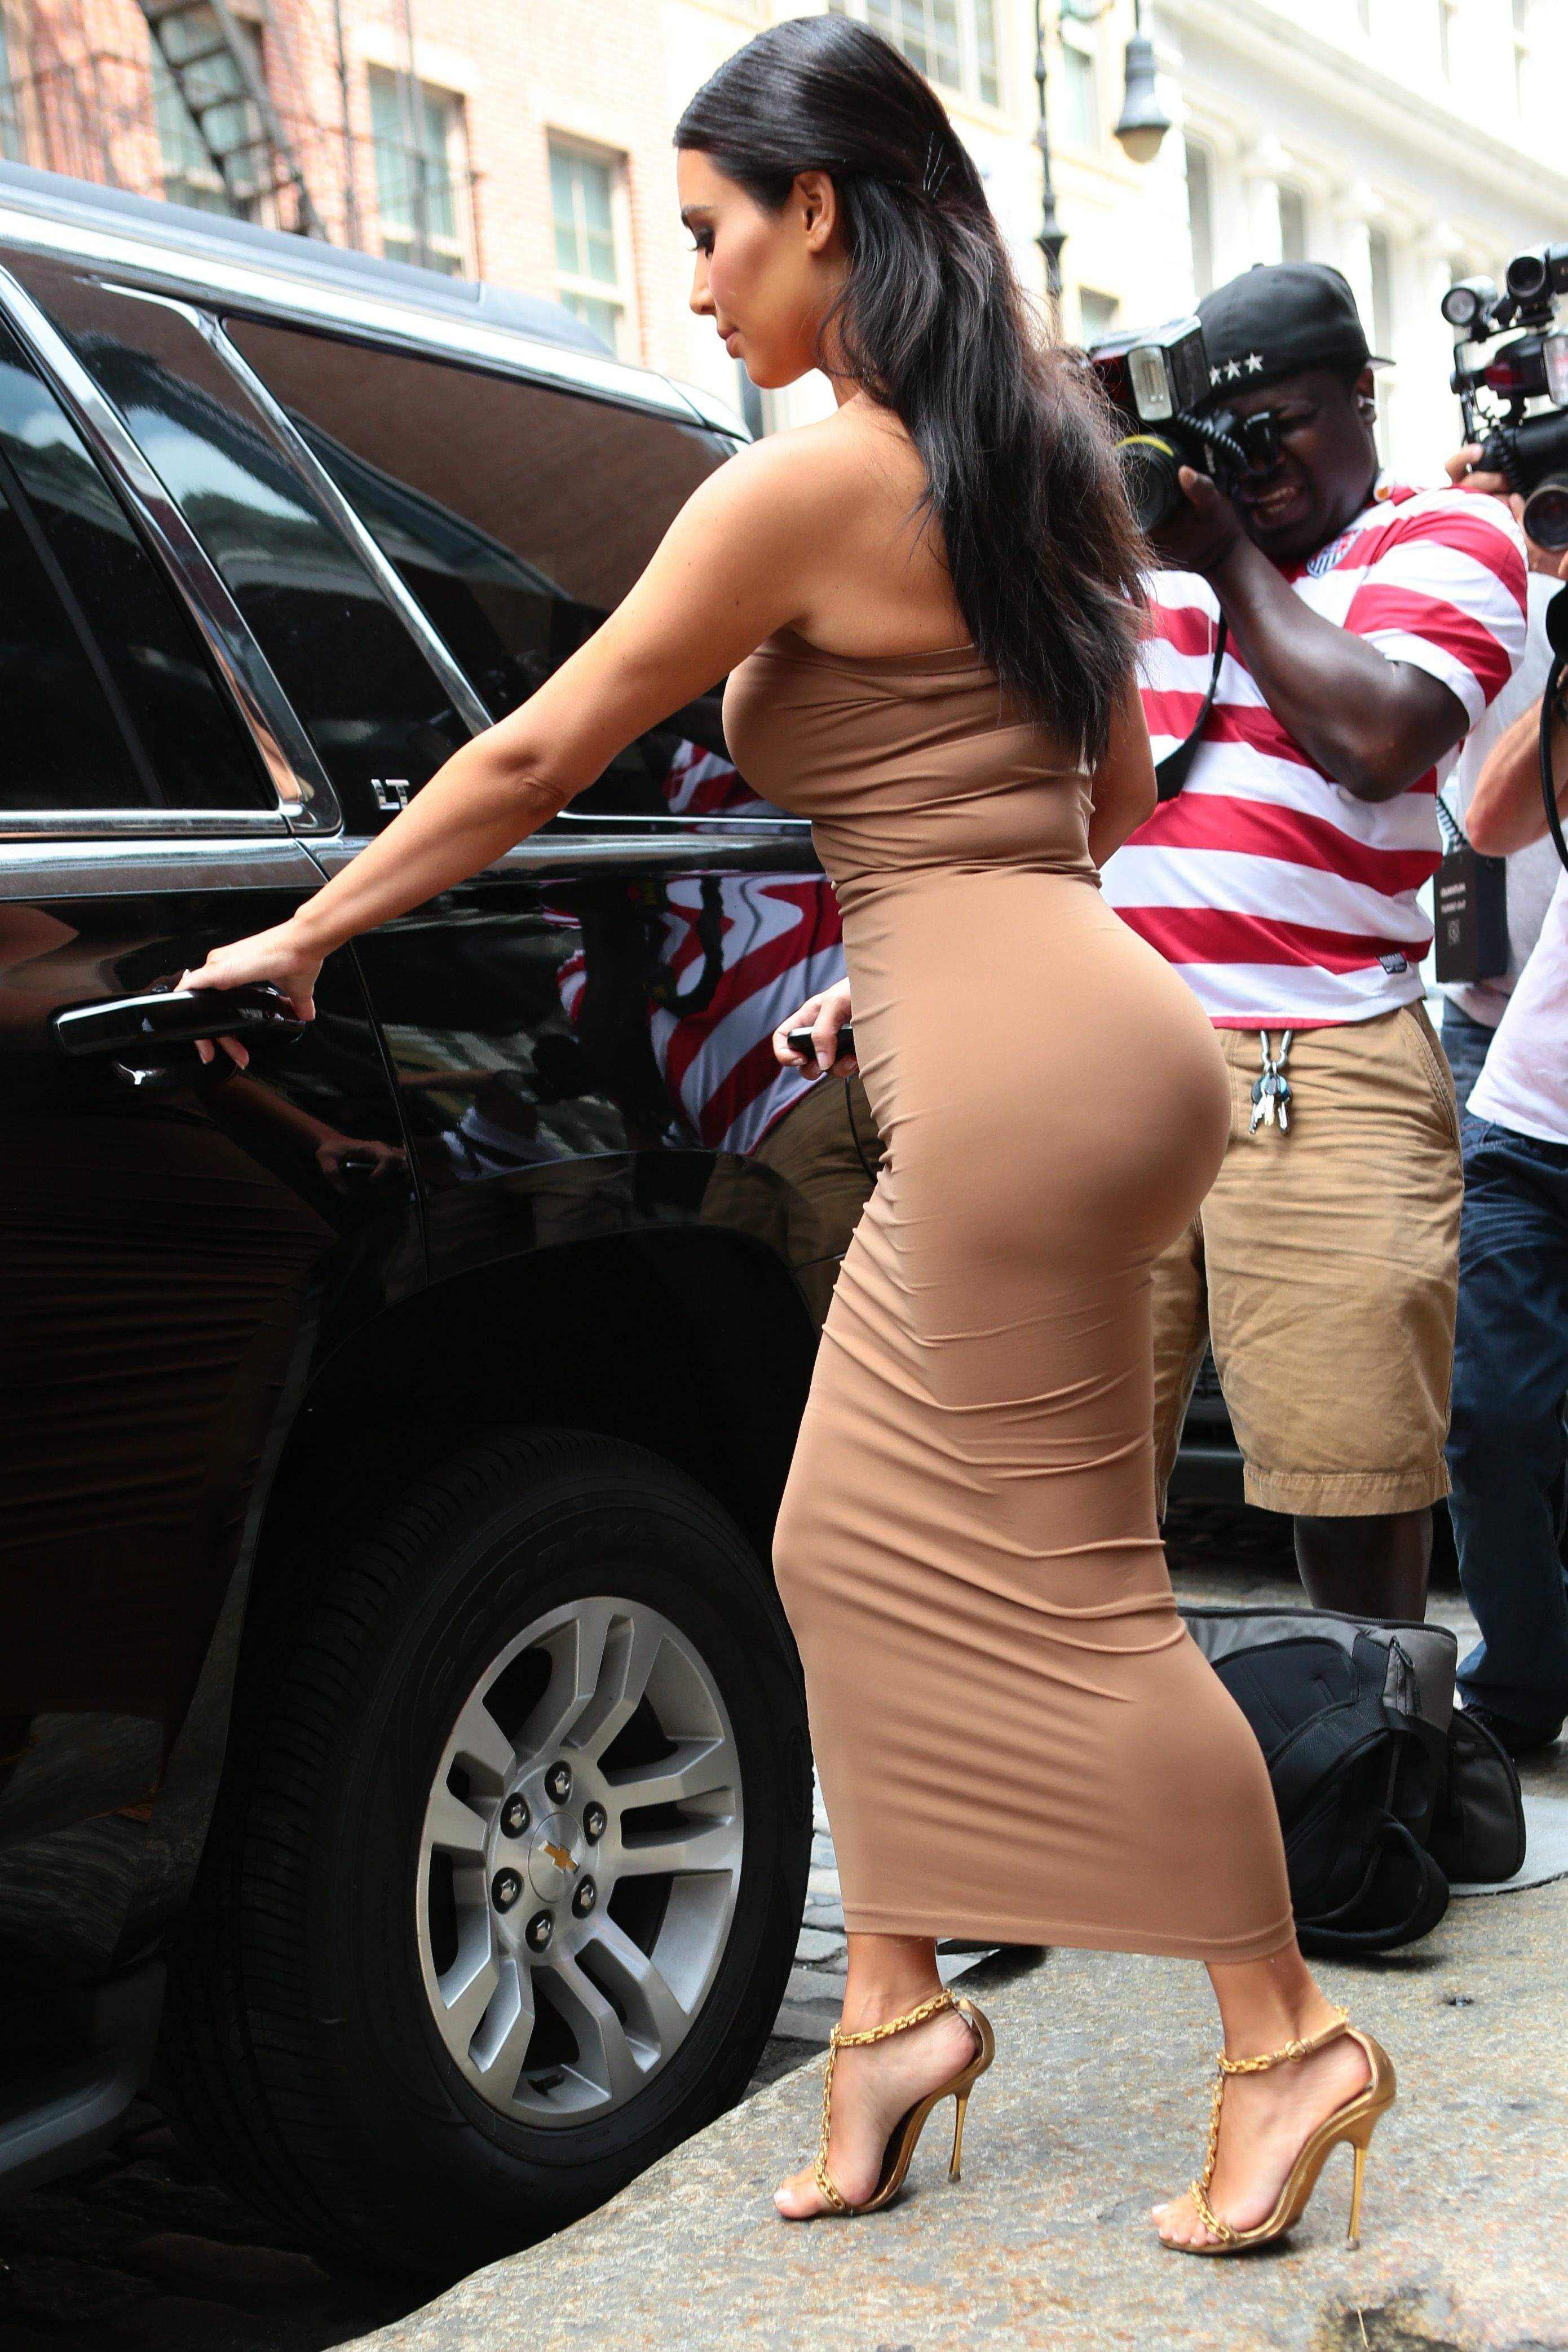 Pictures of kim kardashian ass confirm